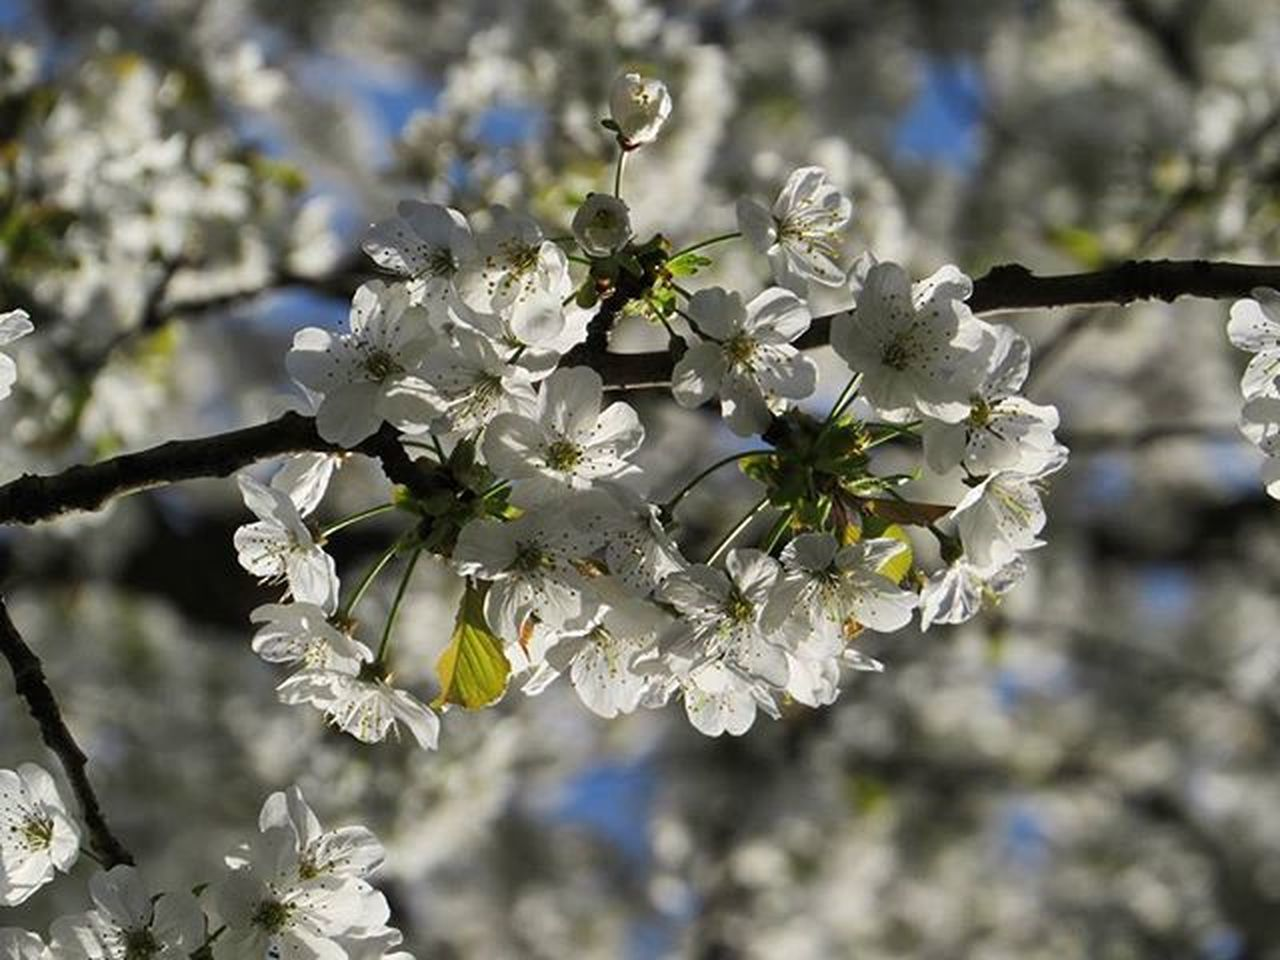 Flowering Floweringflower Floweringcherry Tree Forest Nature Naturerlebnis Chillout Nature_perfection Natgeo Natgeotravel Natgeotravelpic Lonelytree Nofilter Spring Fotofanatics_nature Fotofanatics_macro Fotofanatics_flowers Ponyfony_flowers